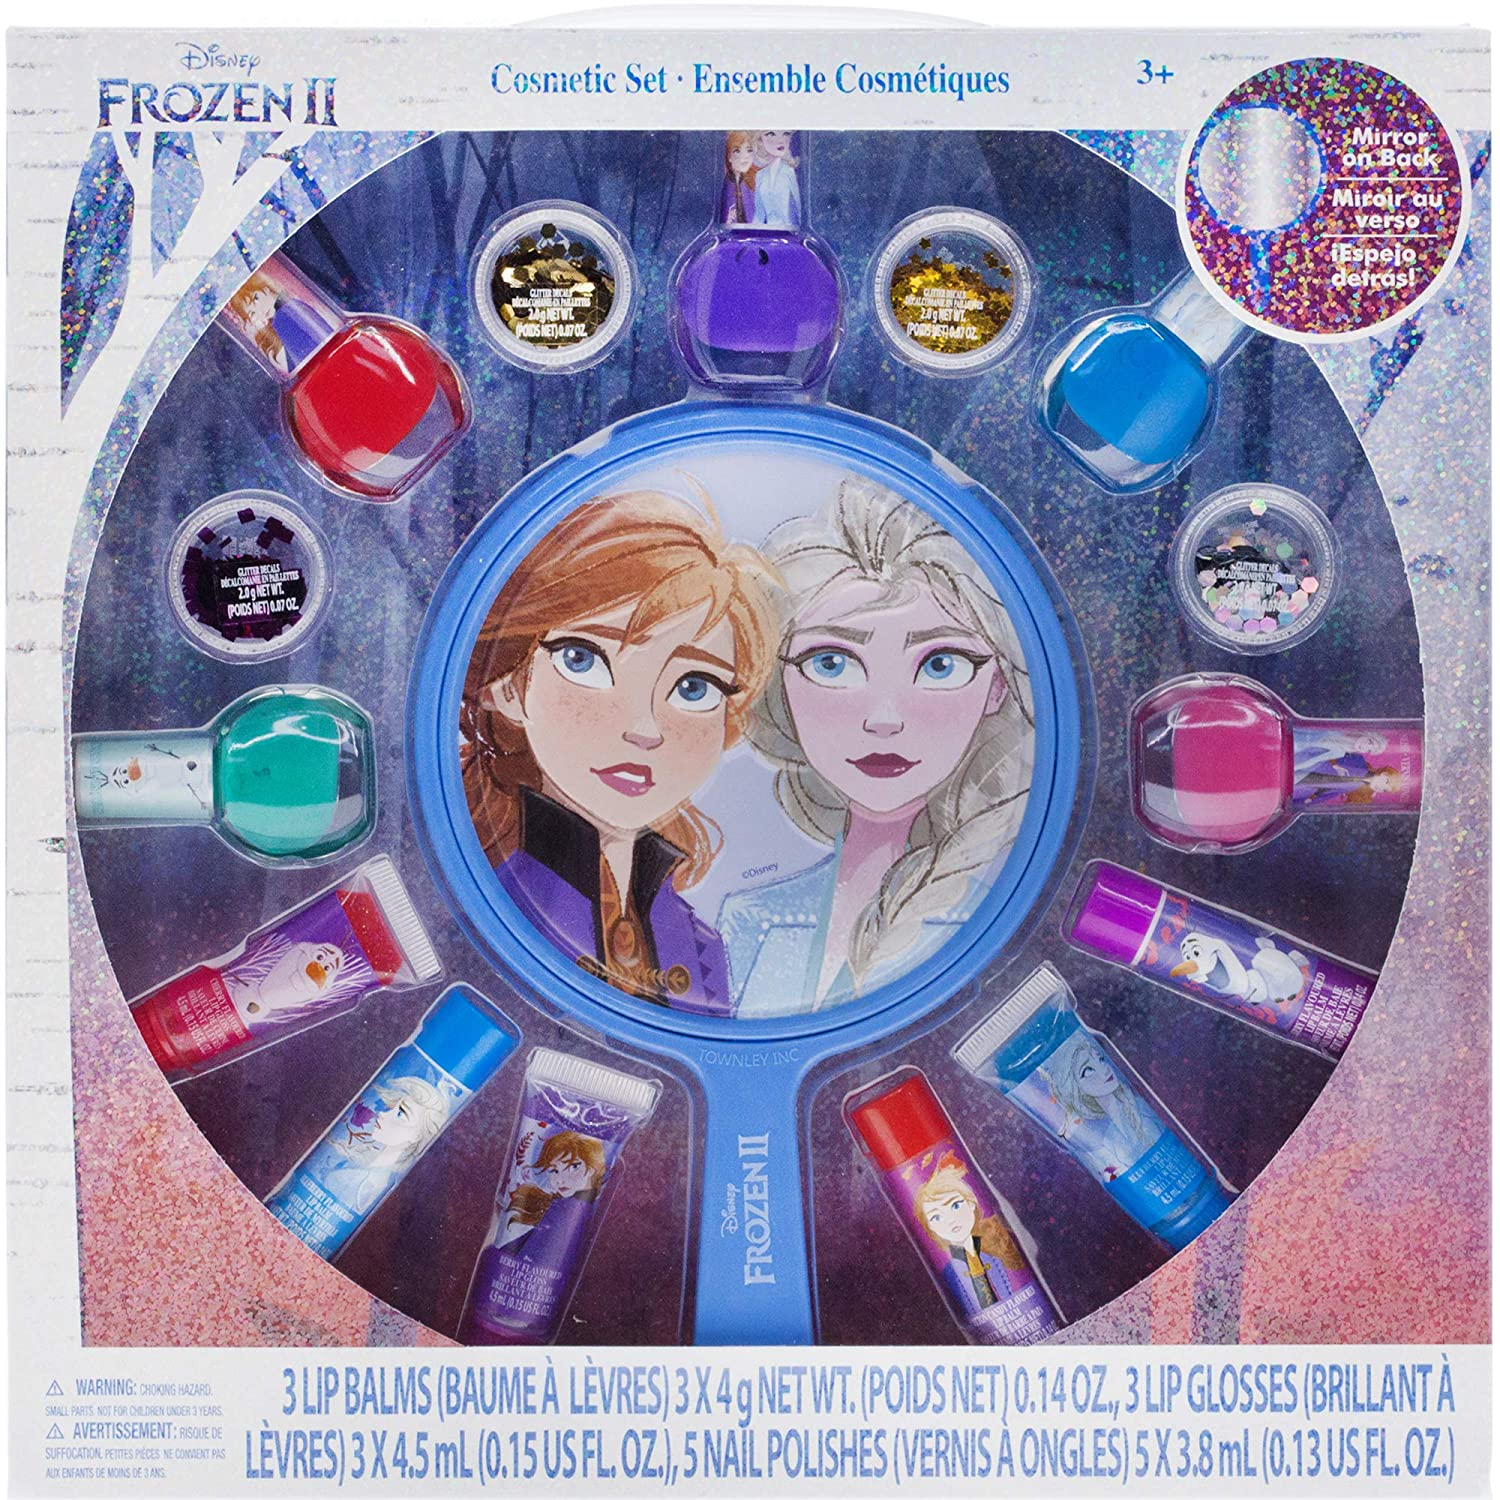 Townley Girl Disney Frozen 2 Non-Toxic Peel-Off Nail Polish, Lip Gloss and Mirror Set for Girls, Glittery and Opaque Colors, Ages 3 – 16 Pack